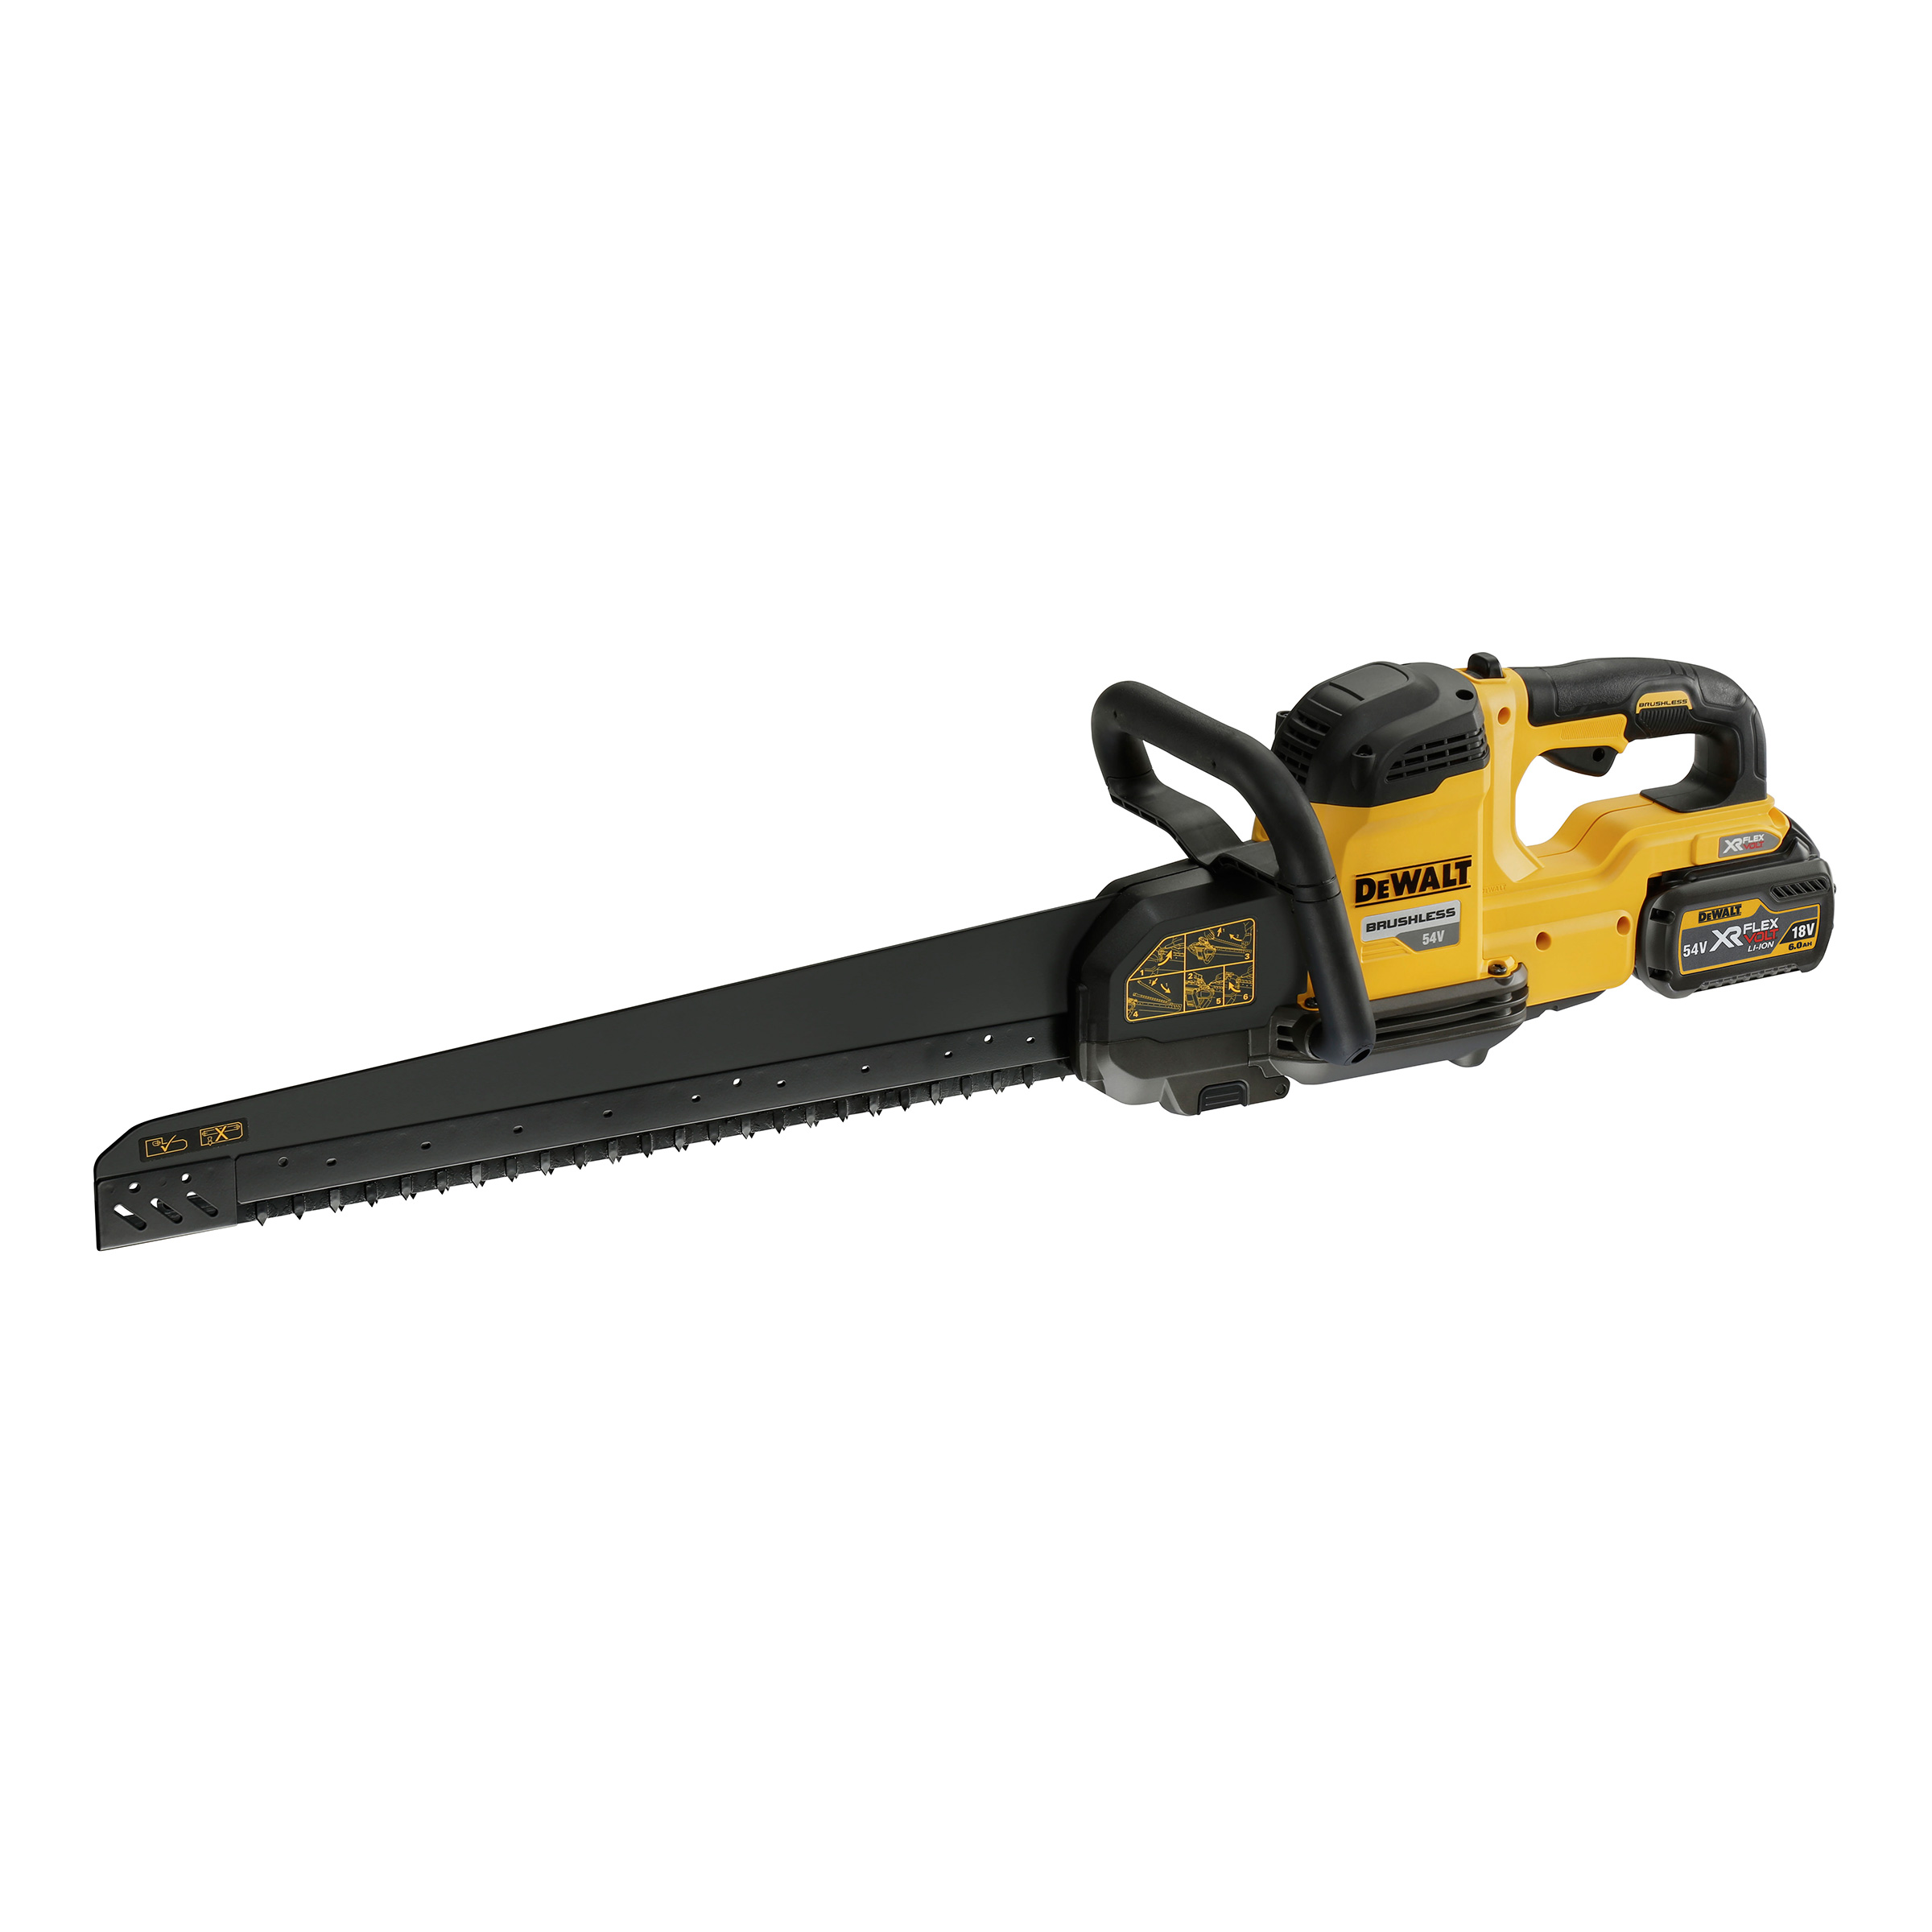 DeWalt Alligator Saws